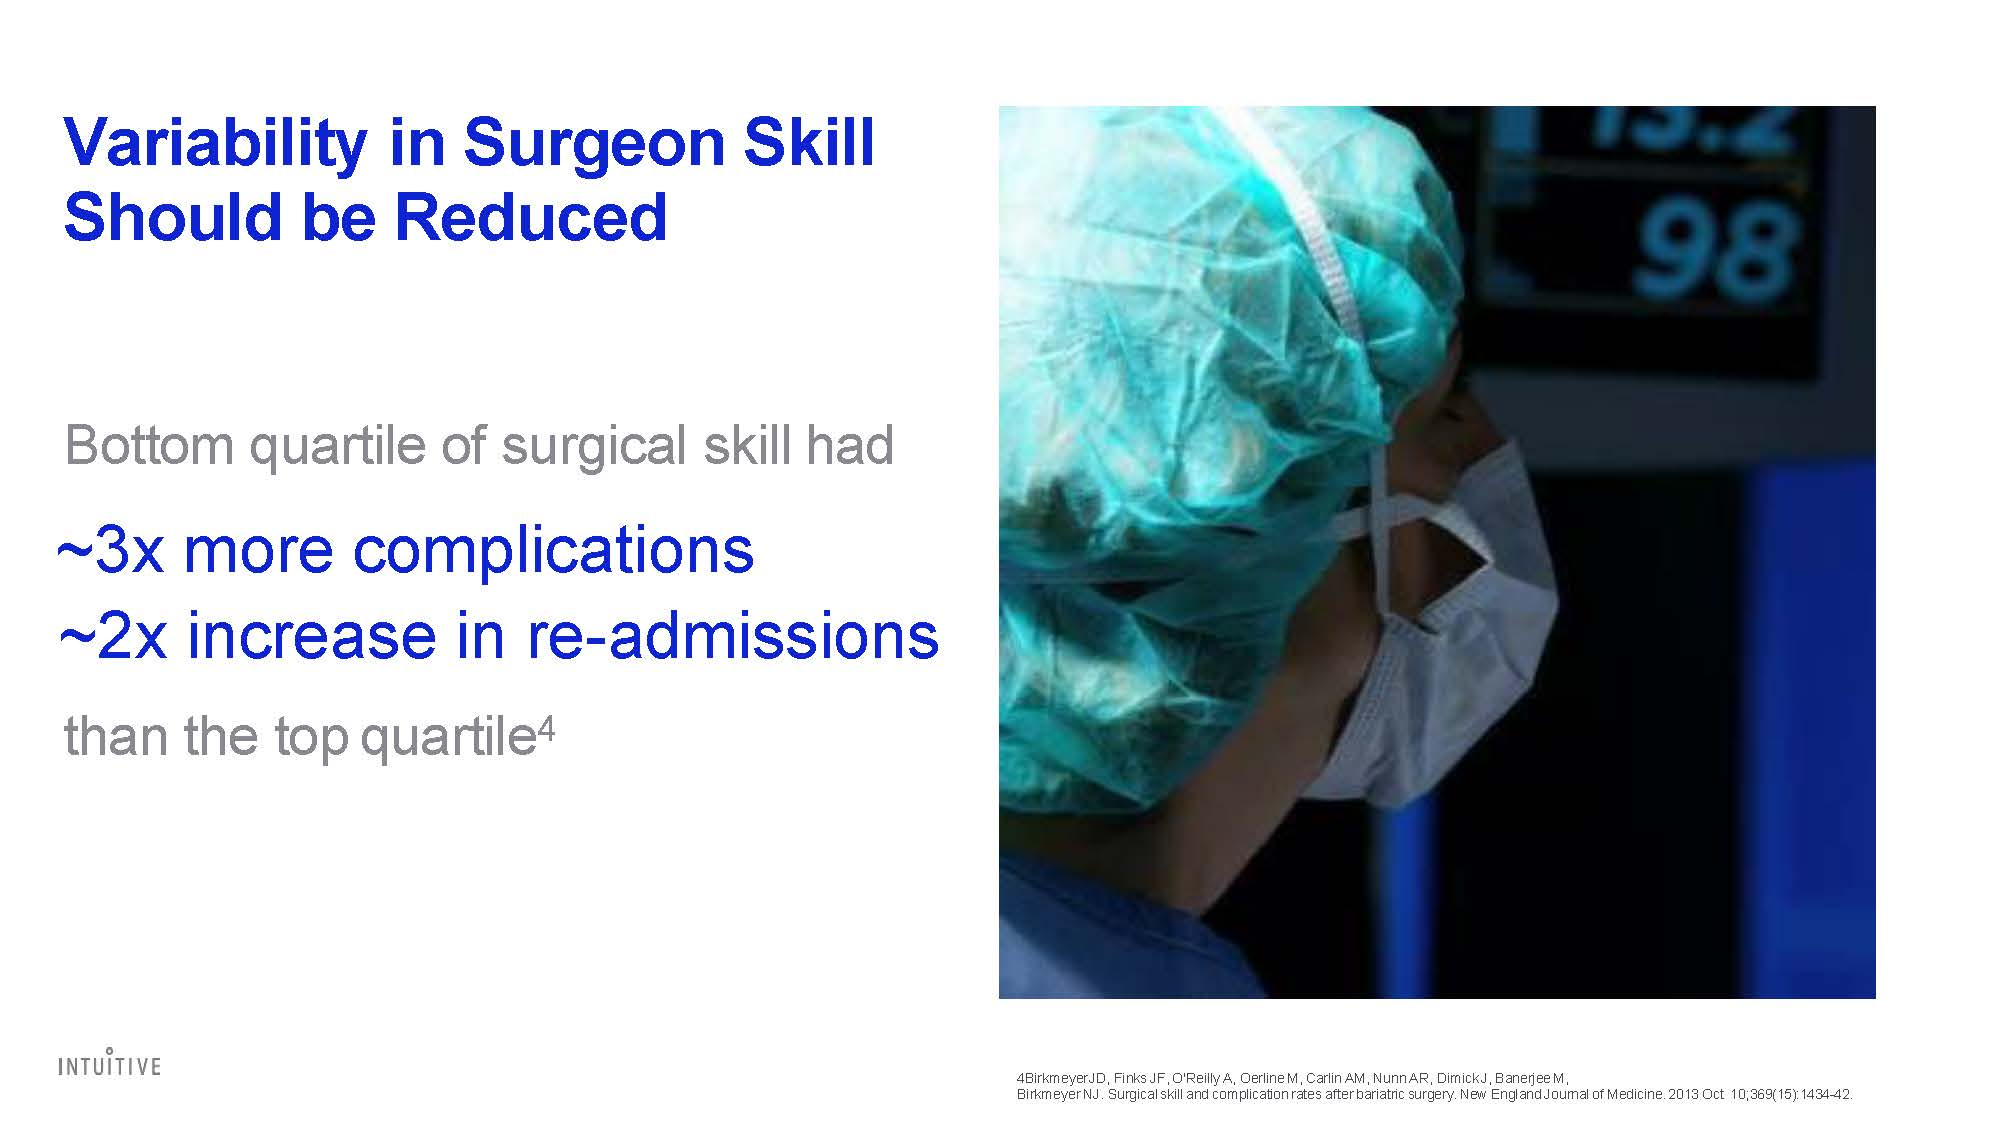 376731845-Intuitive-Surgical-Investor-Presentation-021218_Page_09.jpg